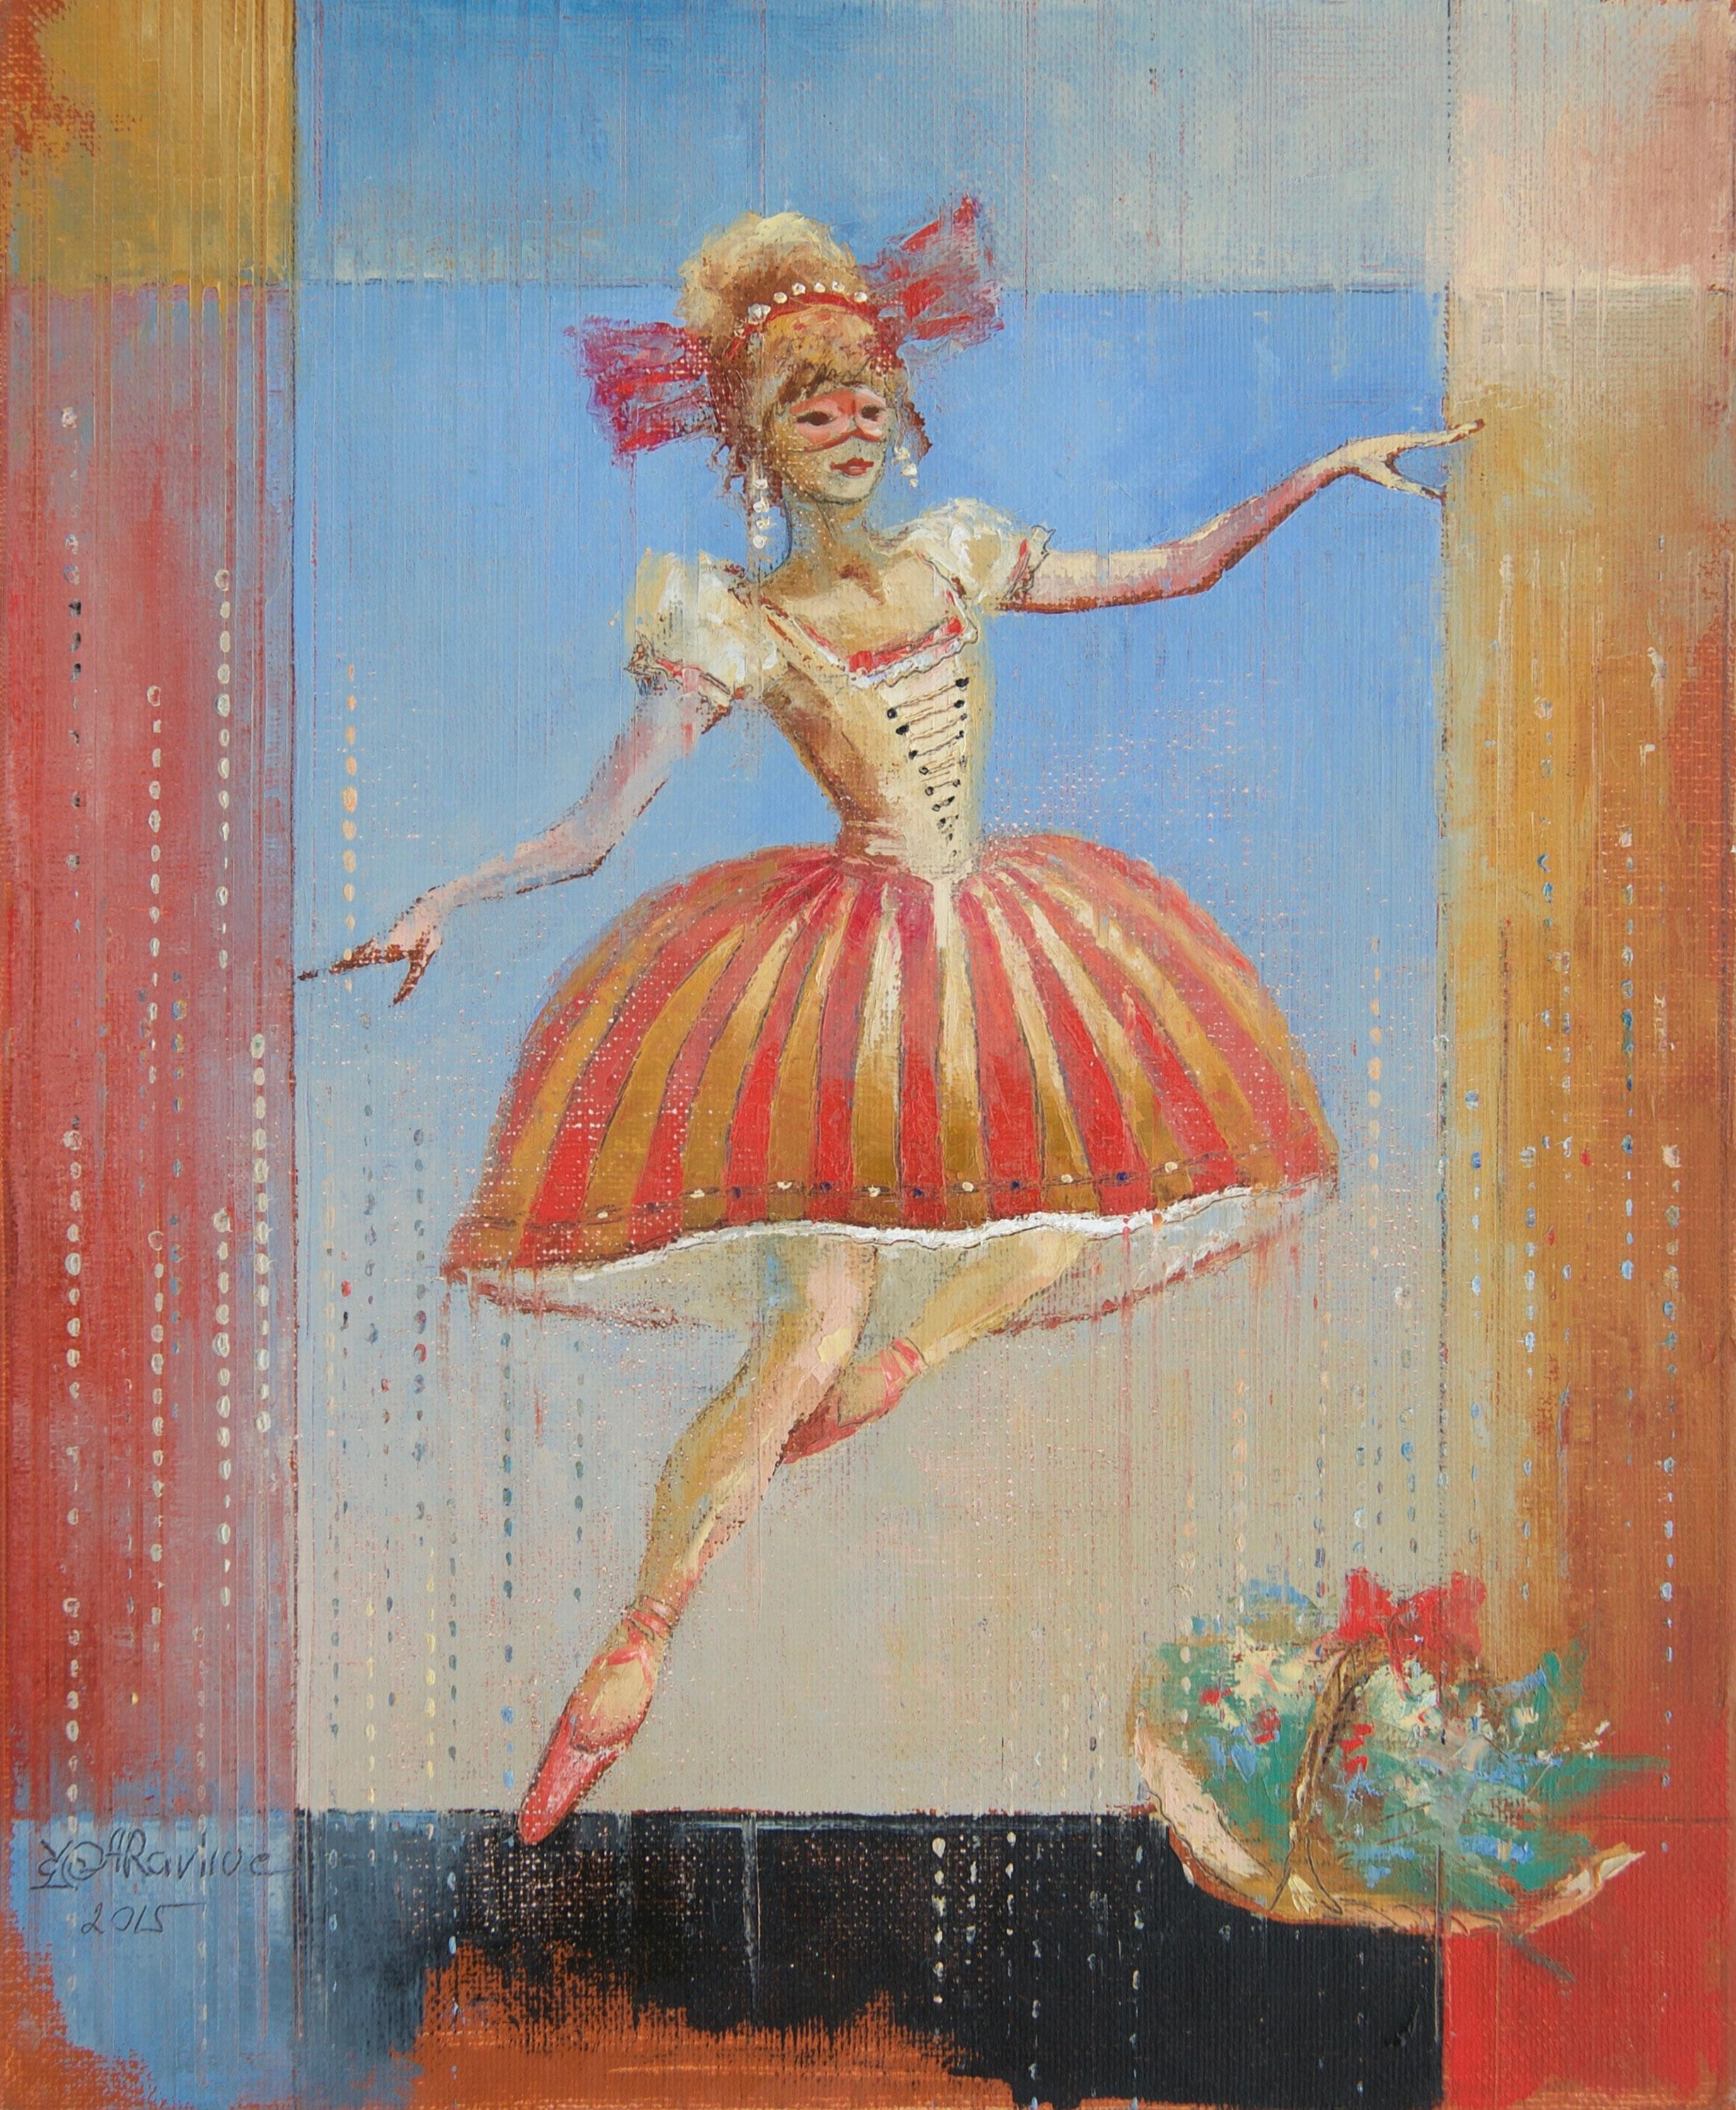 Dancing Melody, Painting, Oil on Canvas